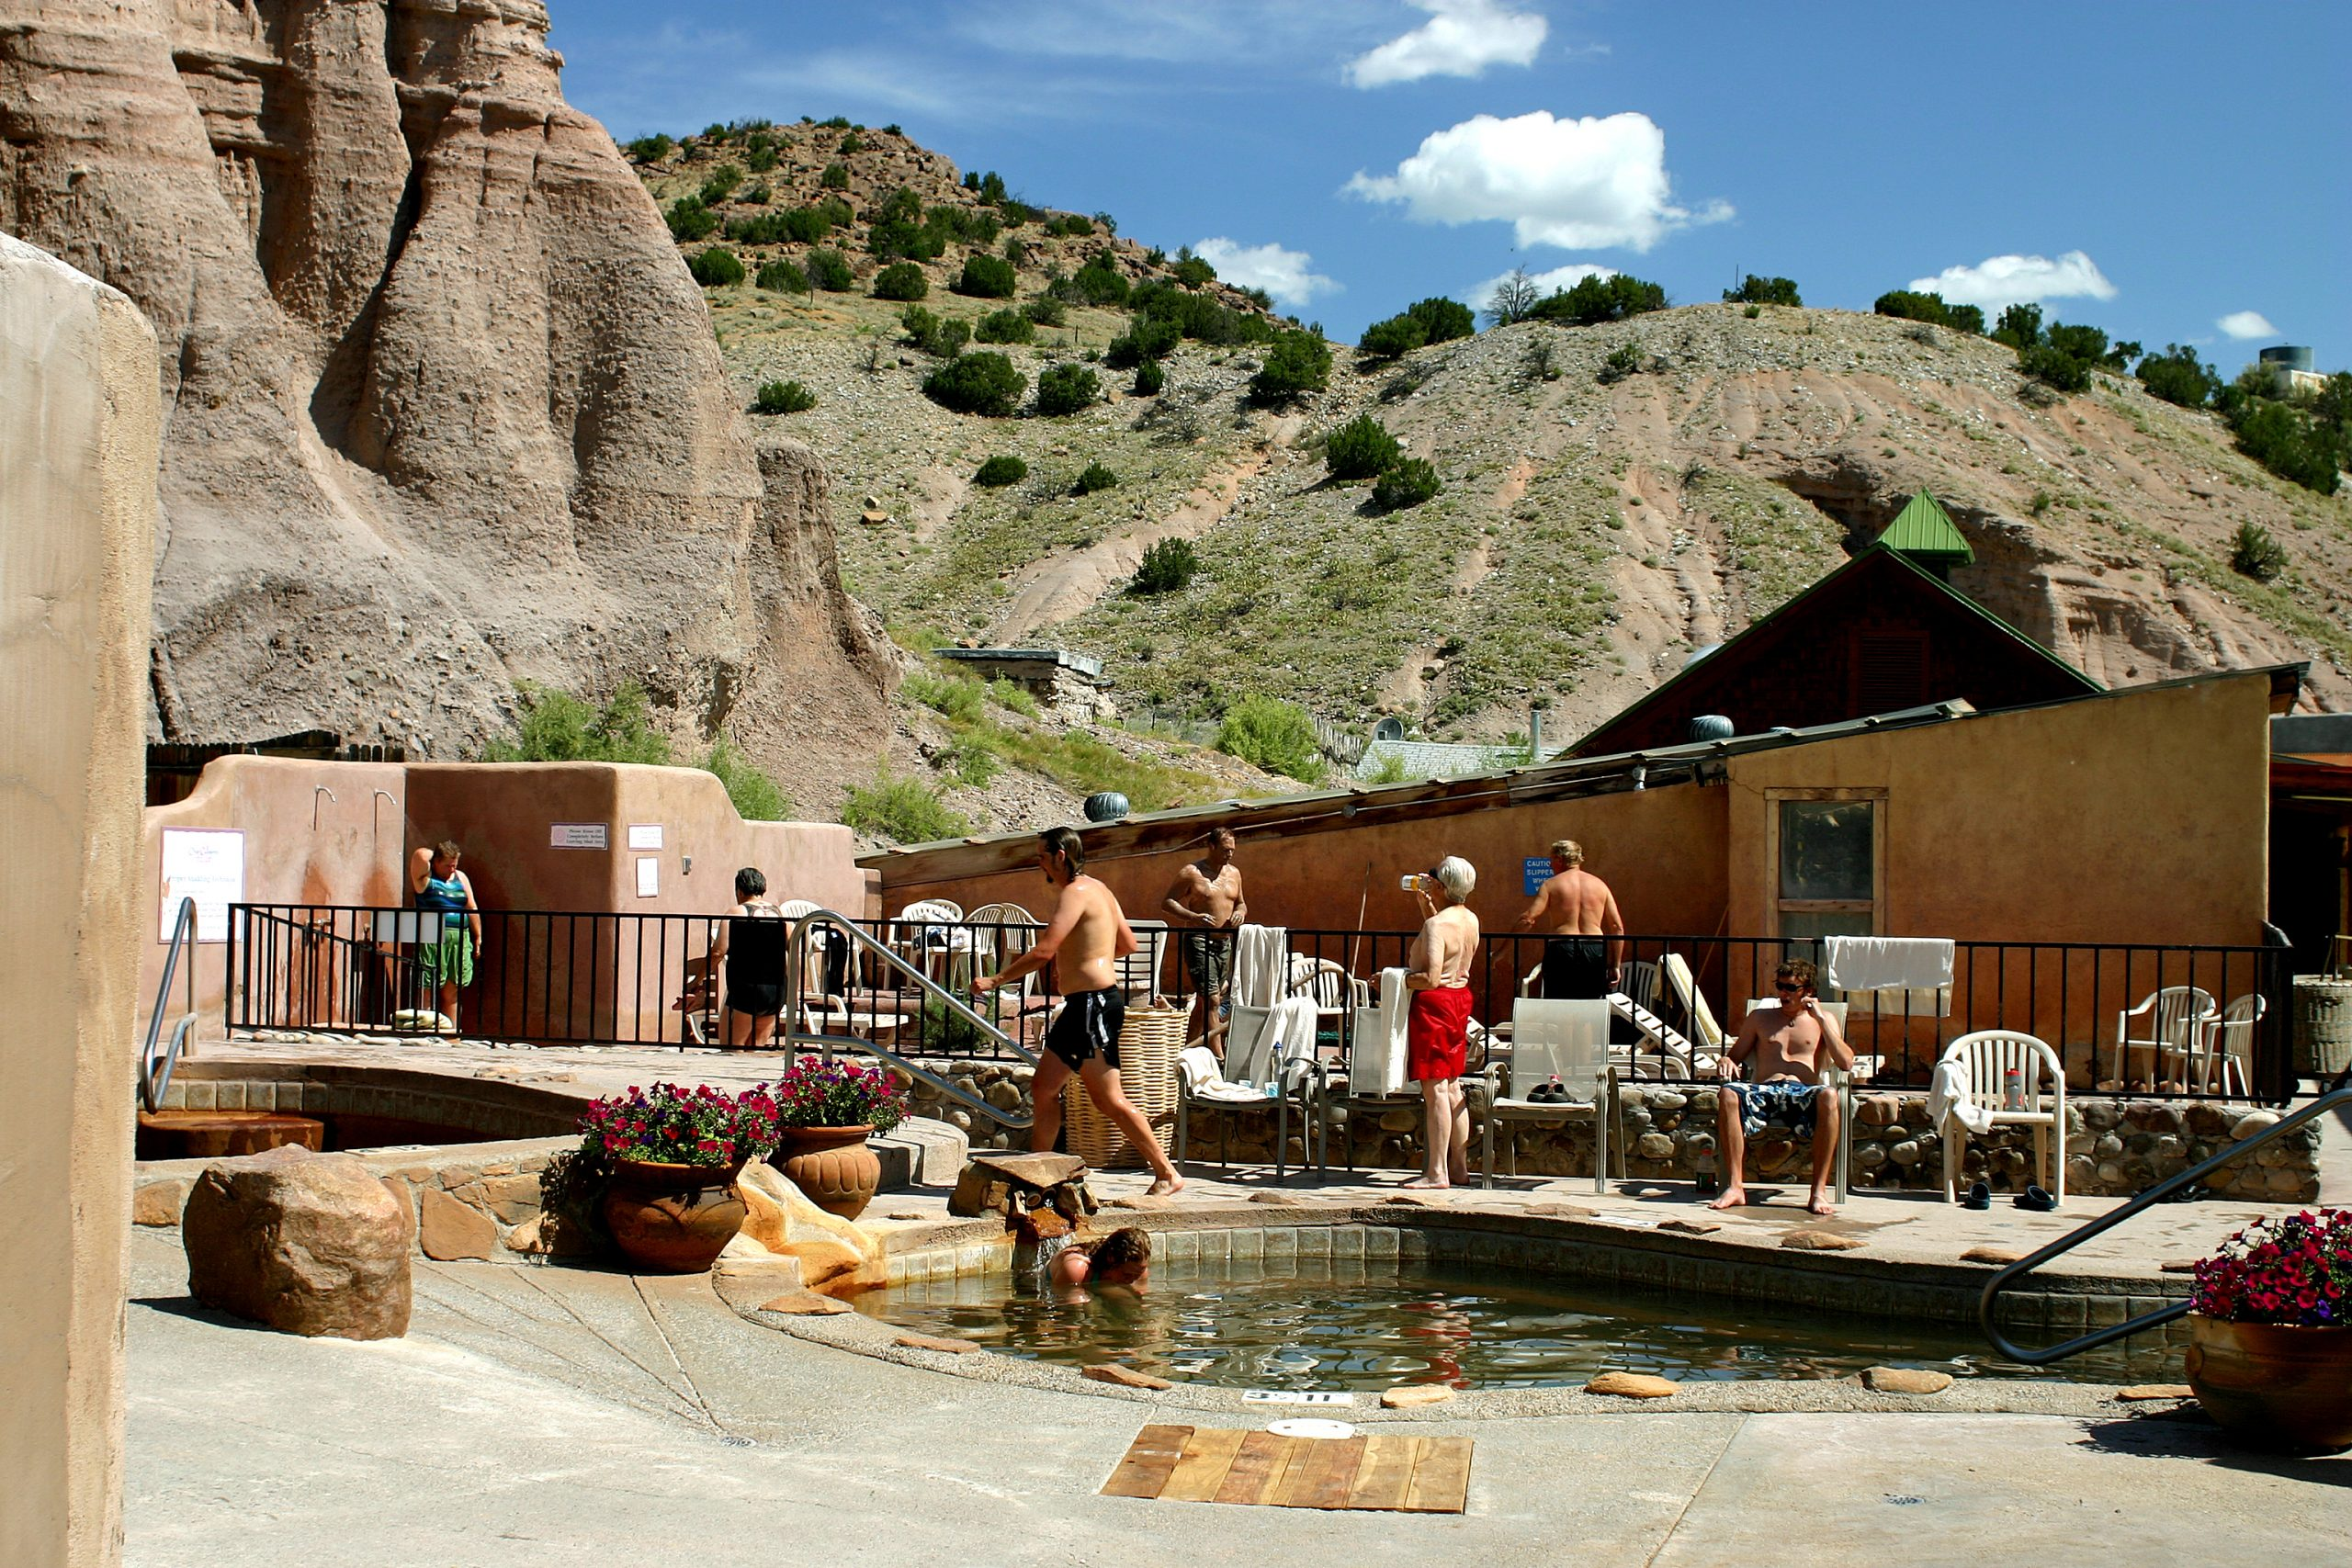 Hot springs pool at Ojo Caliente, NM